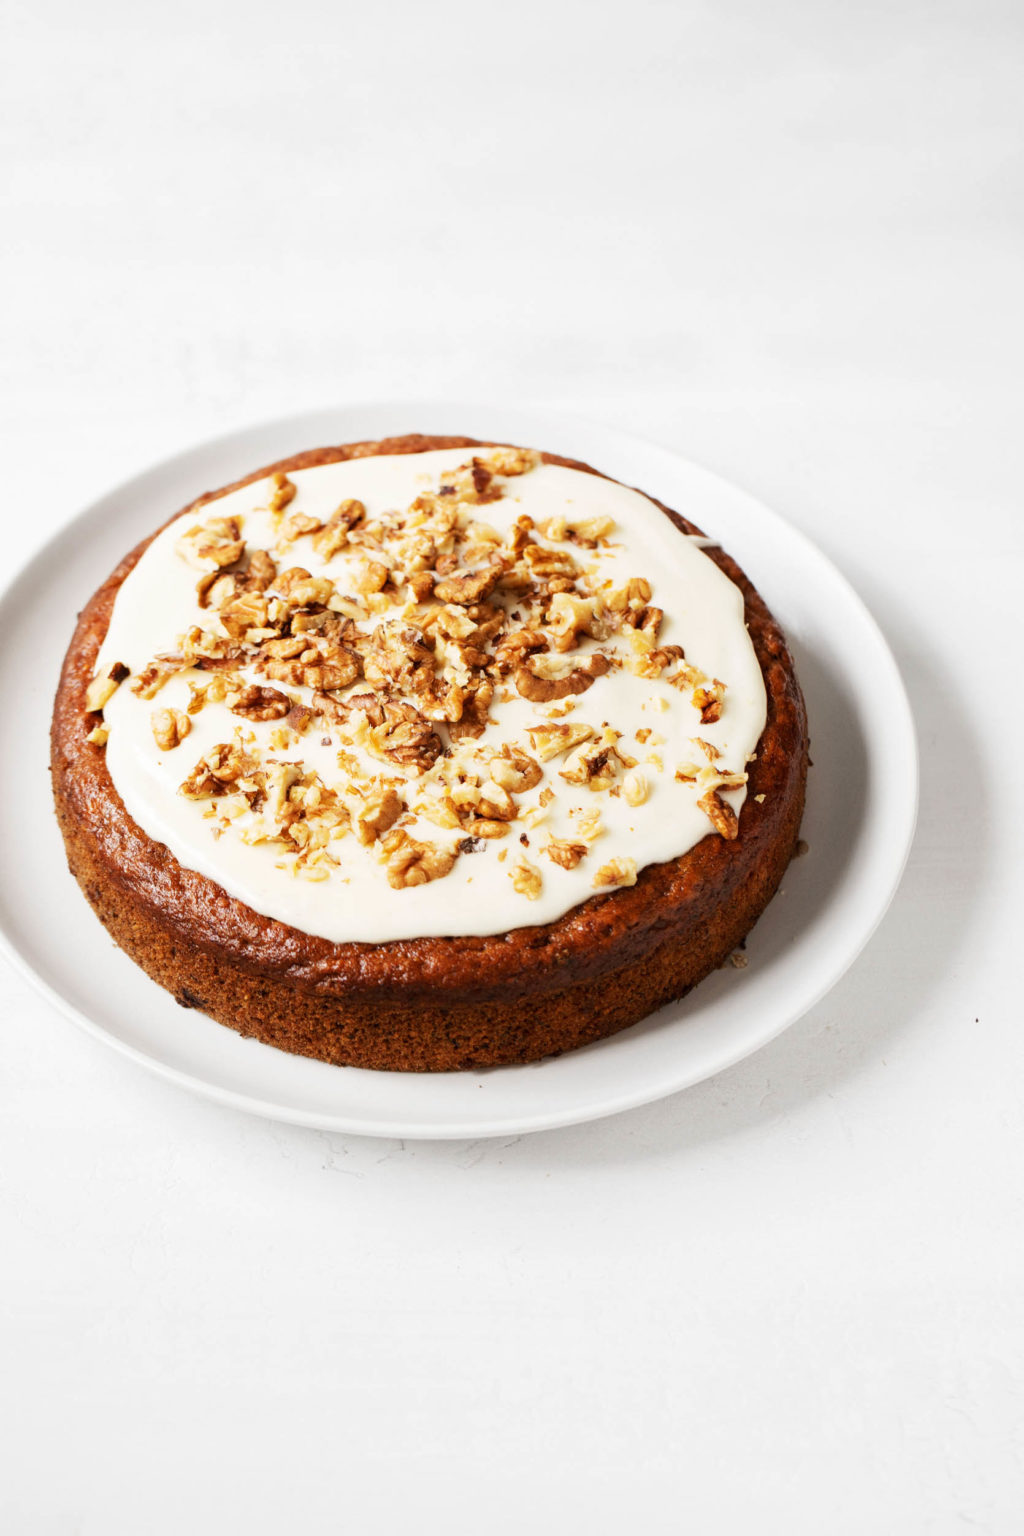 A round, simply decorated vegan banana cake.